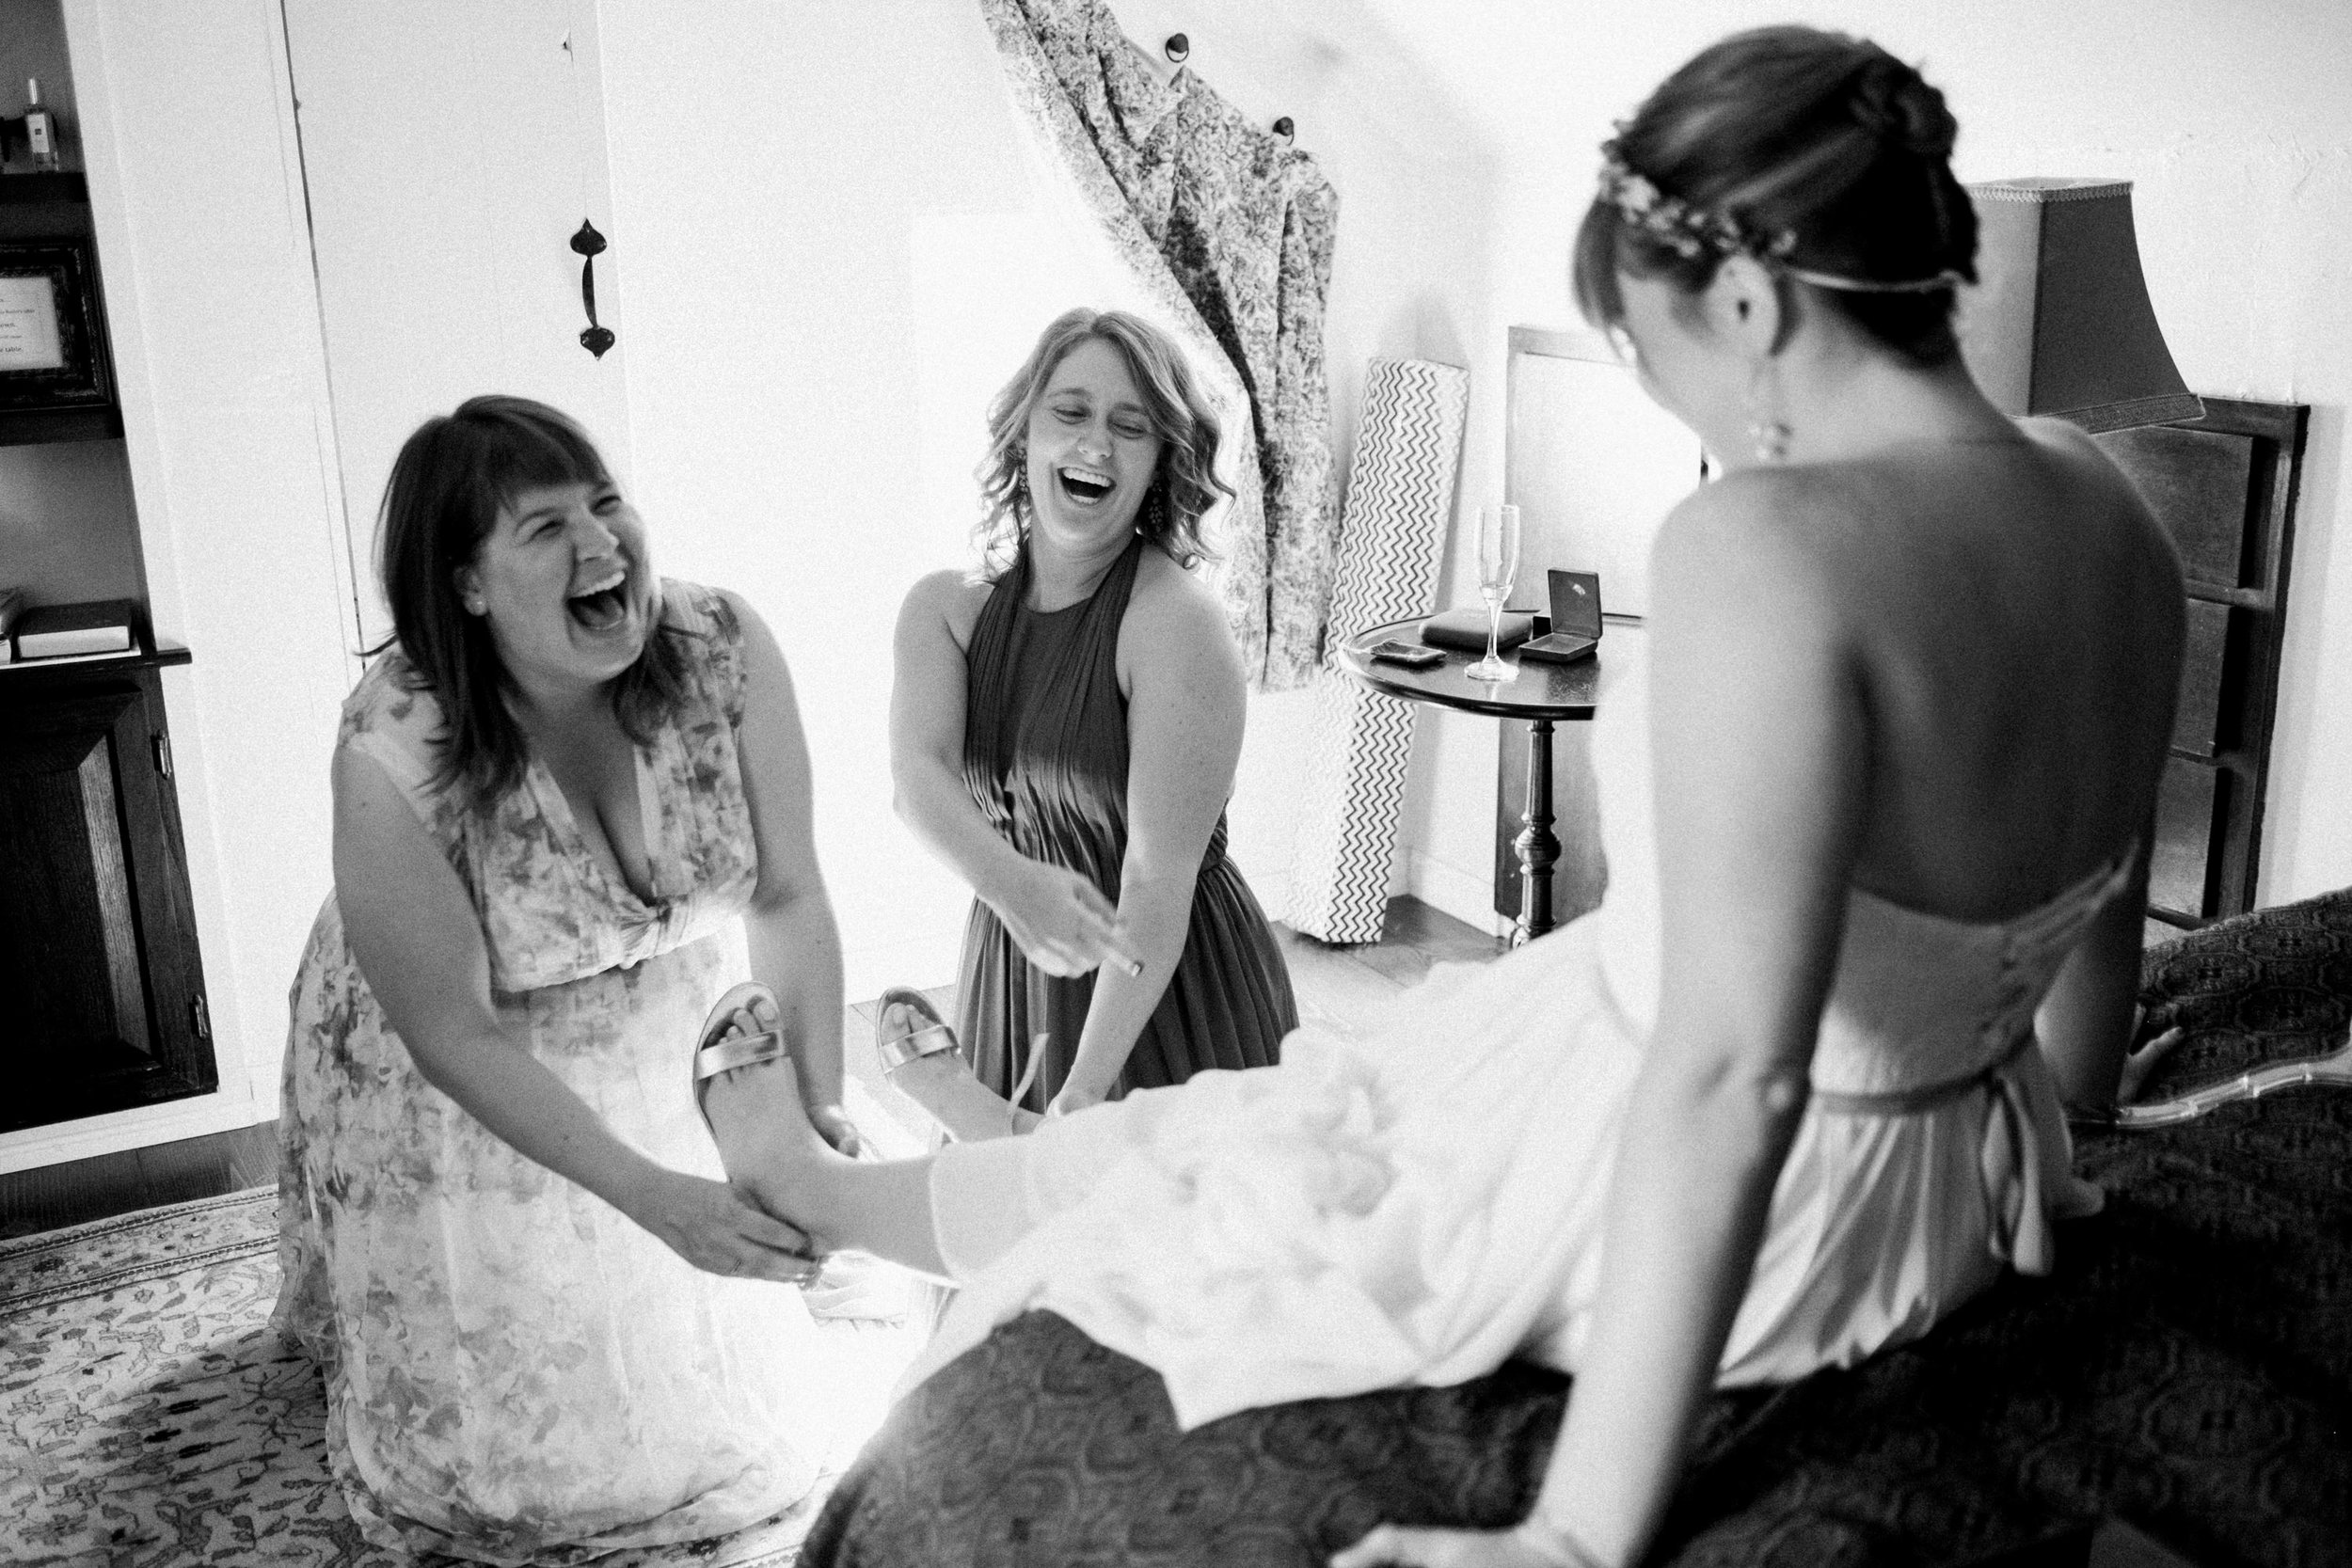 Bride and bridesmaids getting ready putting shoes on